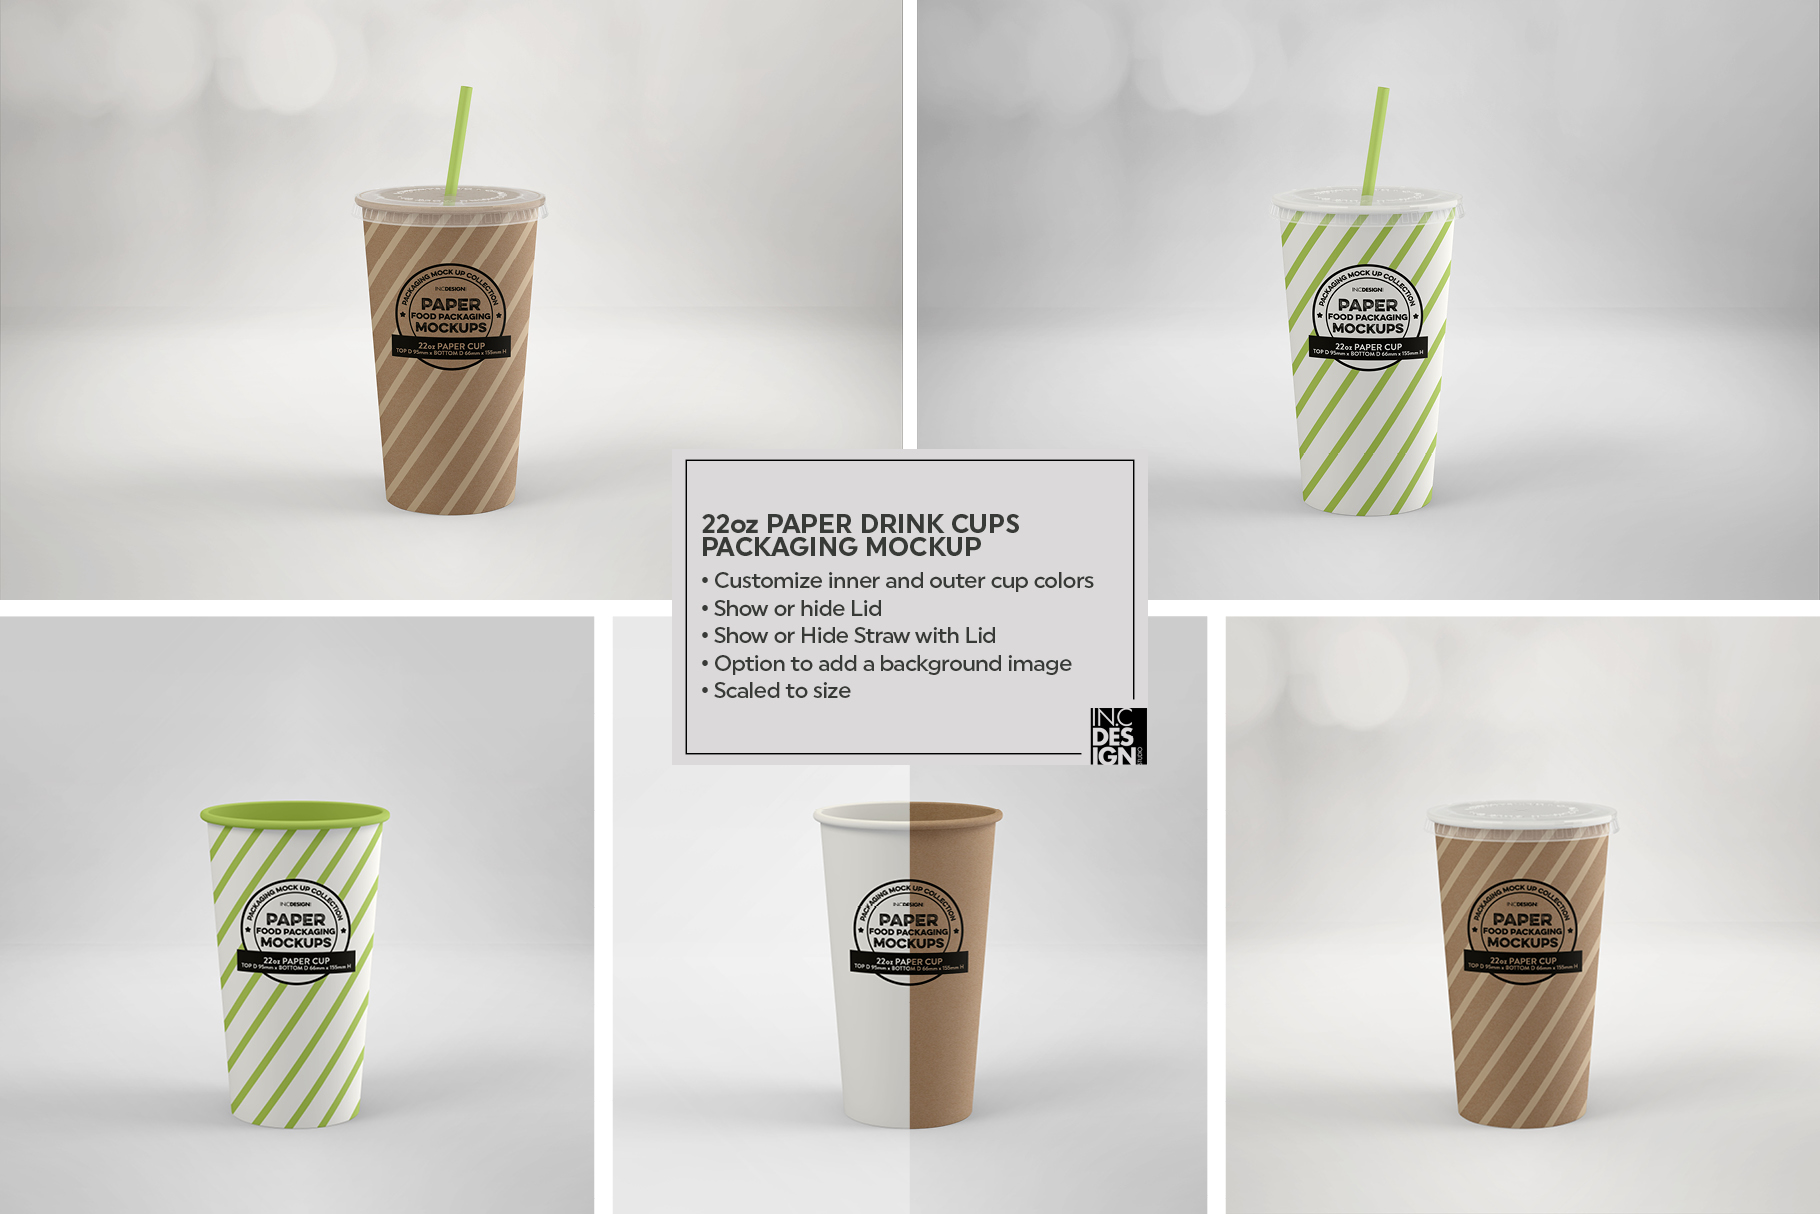 Paper Drink Cups Packaging Mockup example image 14